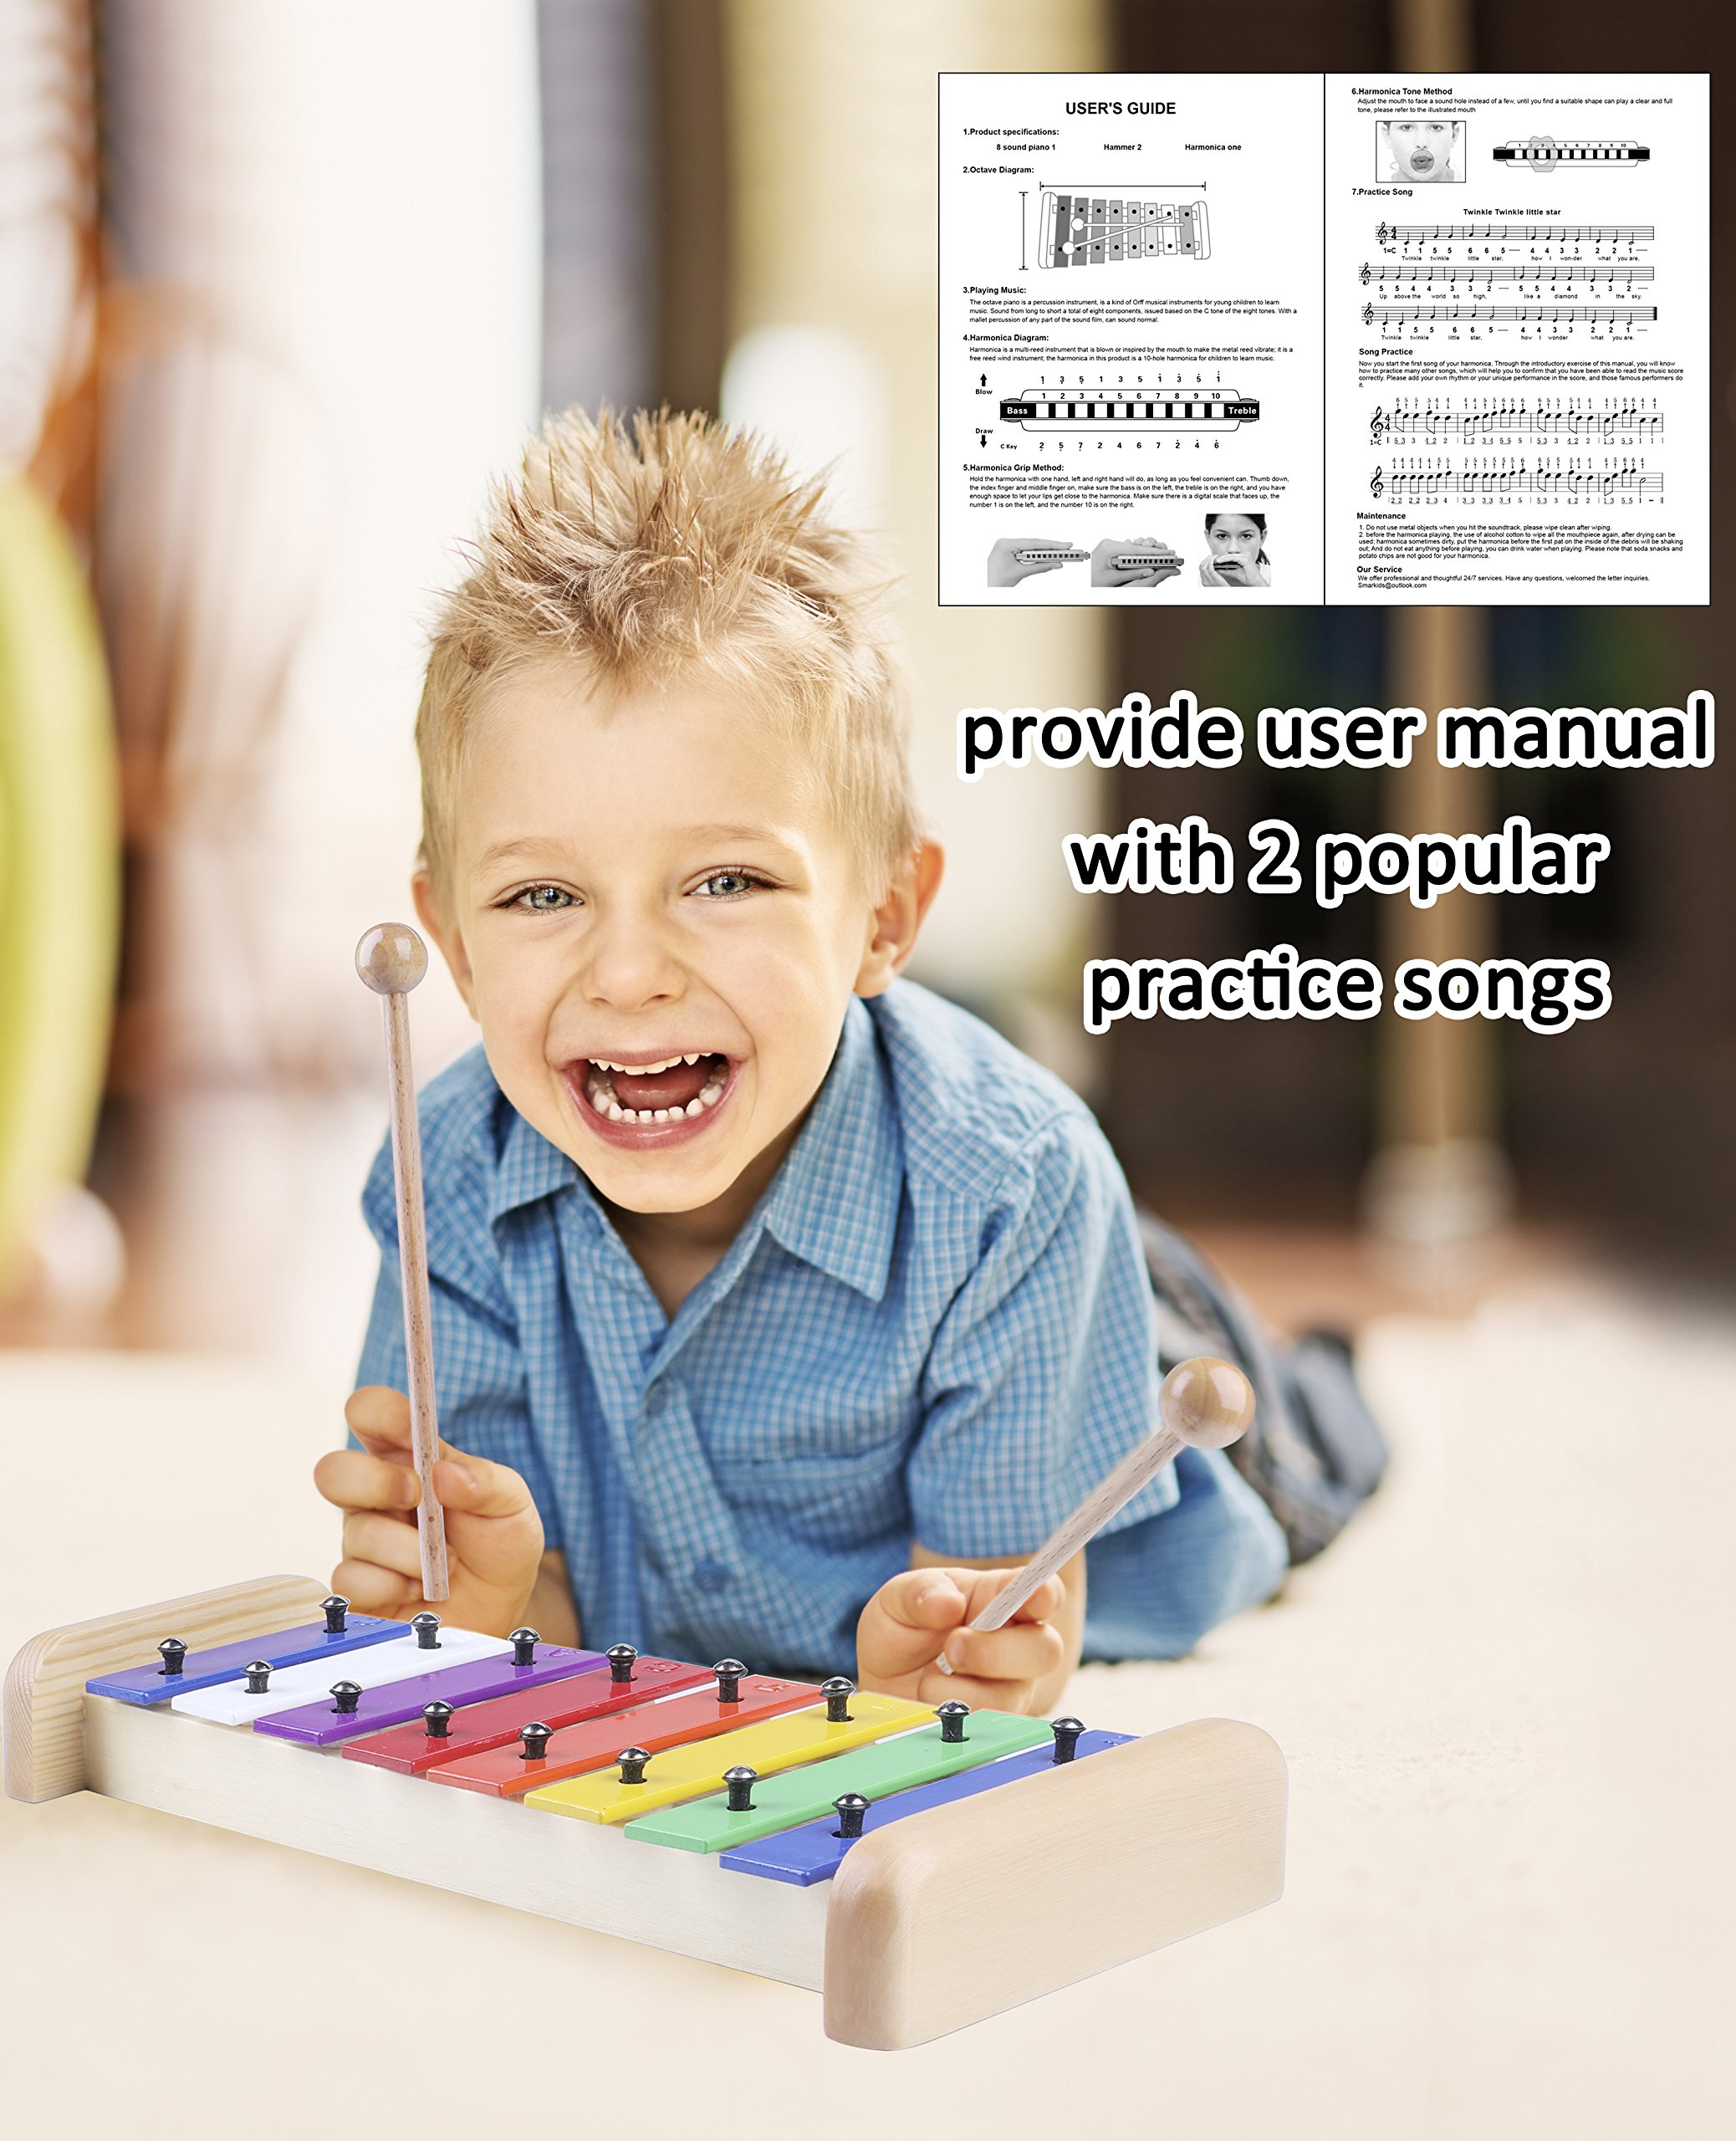 Smarkids Kids Xylophone Wooden Musical Toys Prime 8 Note Metal Keys Glockenspiel and Harmonica Instruments Set with Song Sheet for Toddler, Children, Boys and Girls with Xylophone Mallets by Smarkids (Image #4)